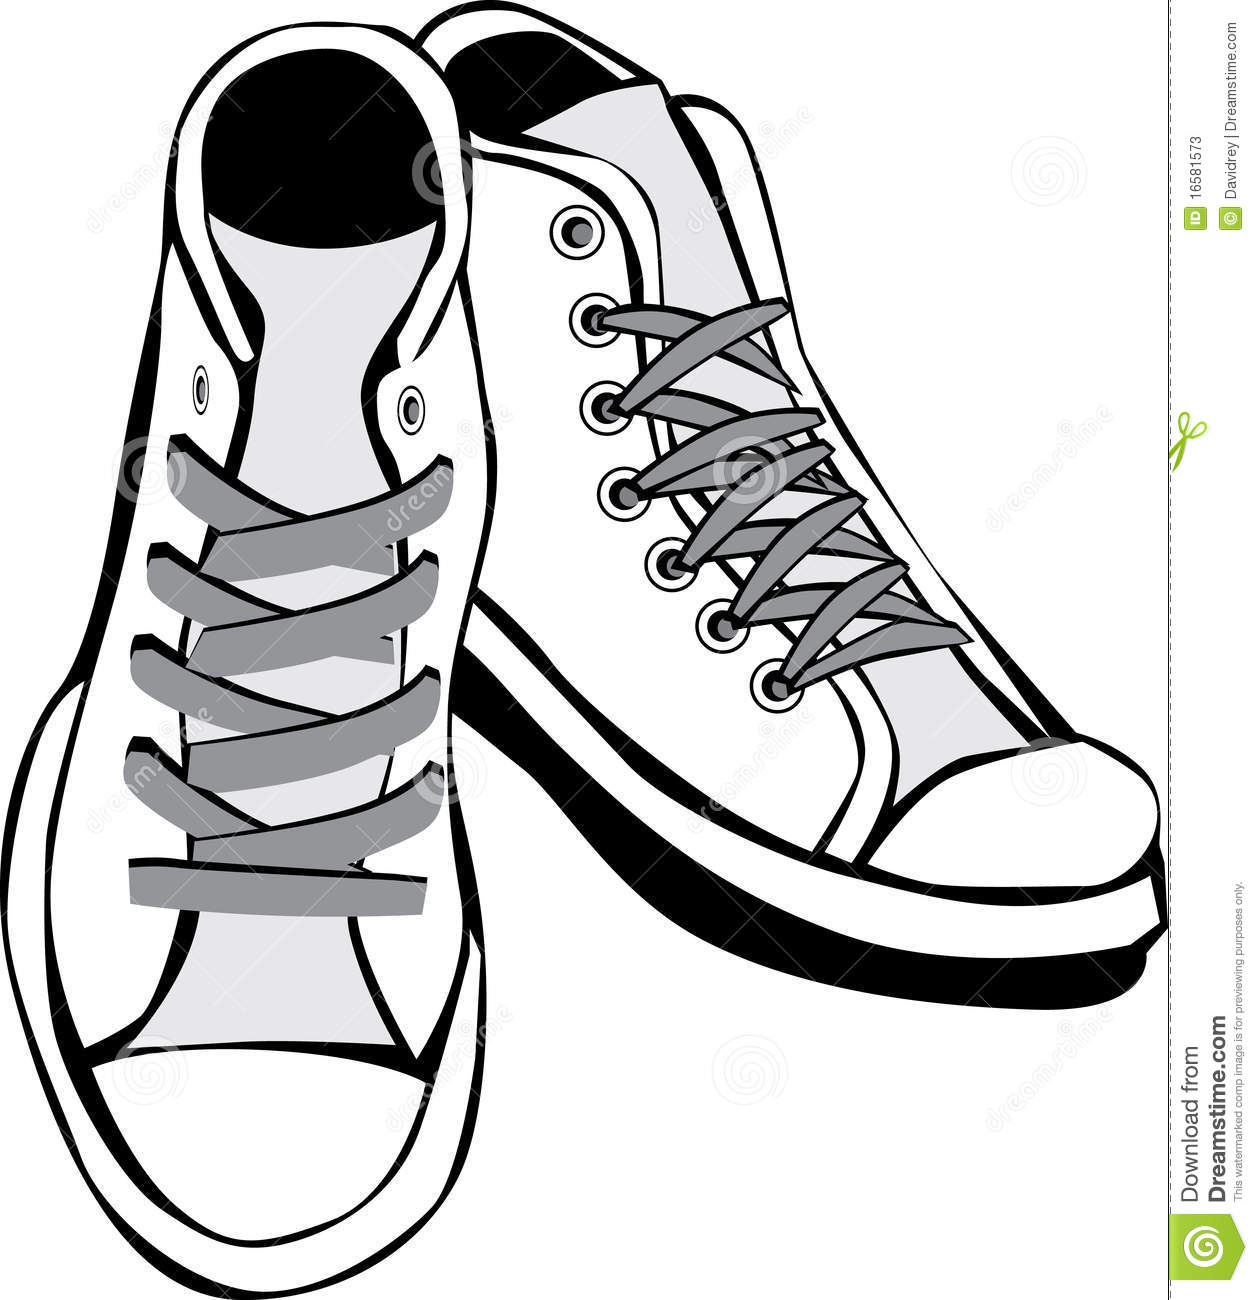 Tennis shoes stock vector. Illustration of footwear, drawing